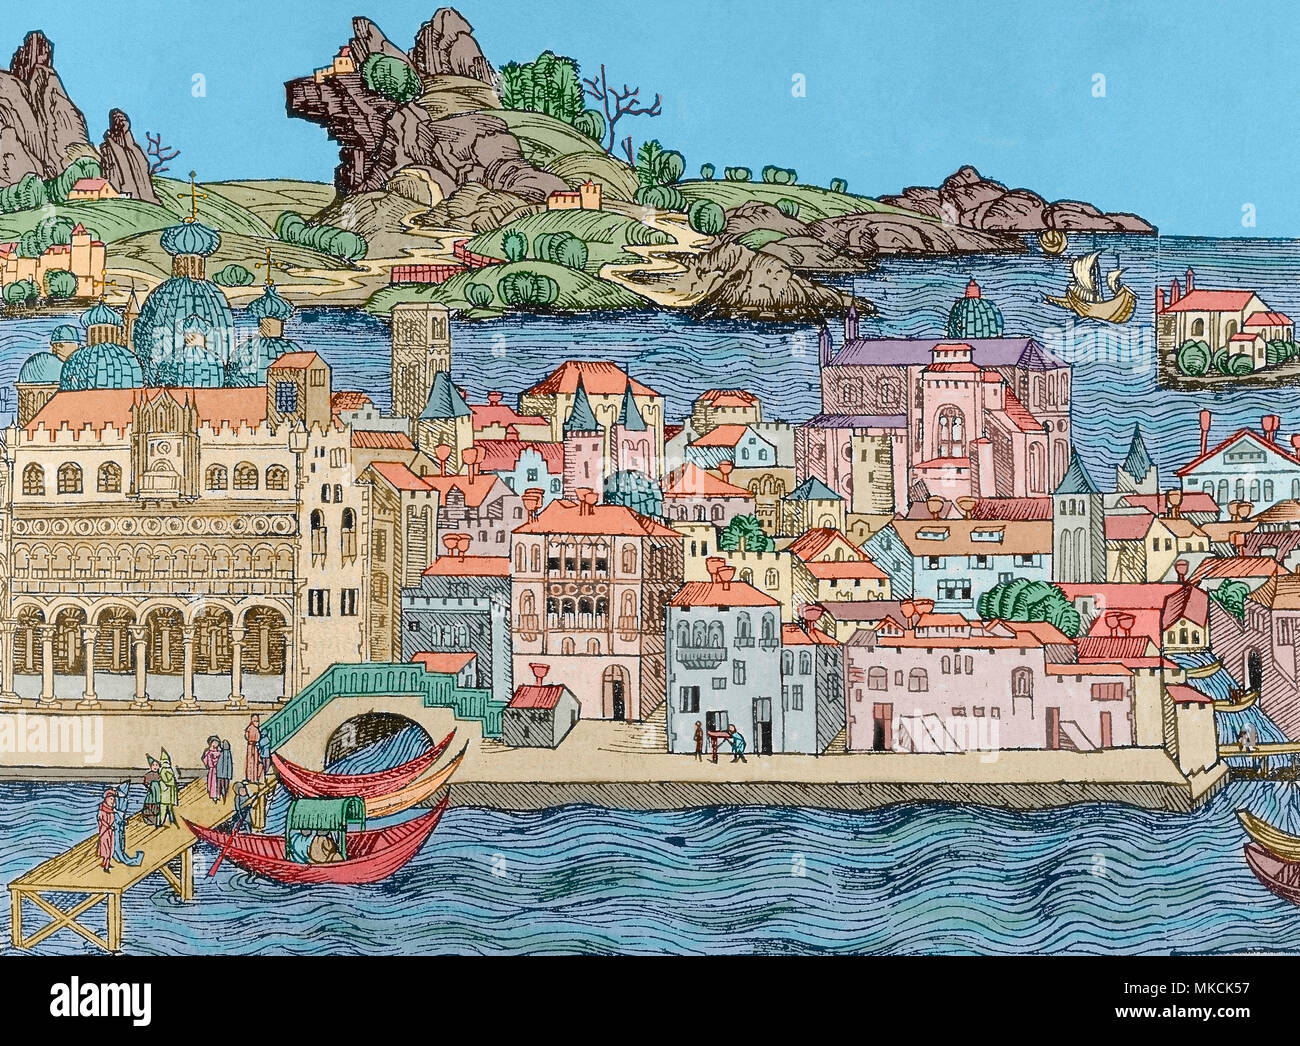 Venice, Italy. Engraving, detail. Nuremberg Chronicle by Hartmann Schedel, 1493. Later colouration. - Stock Image